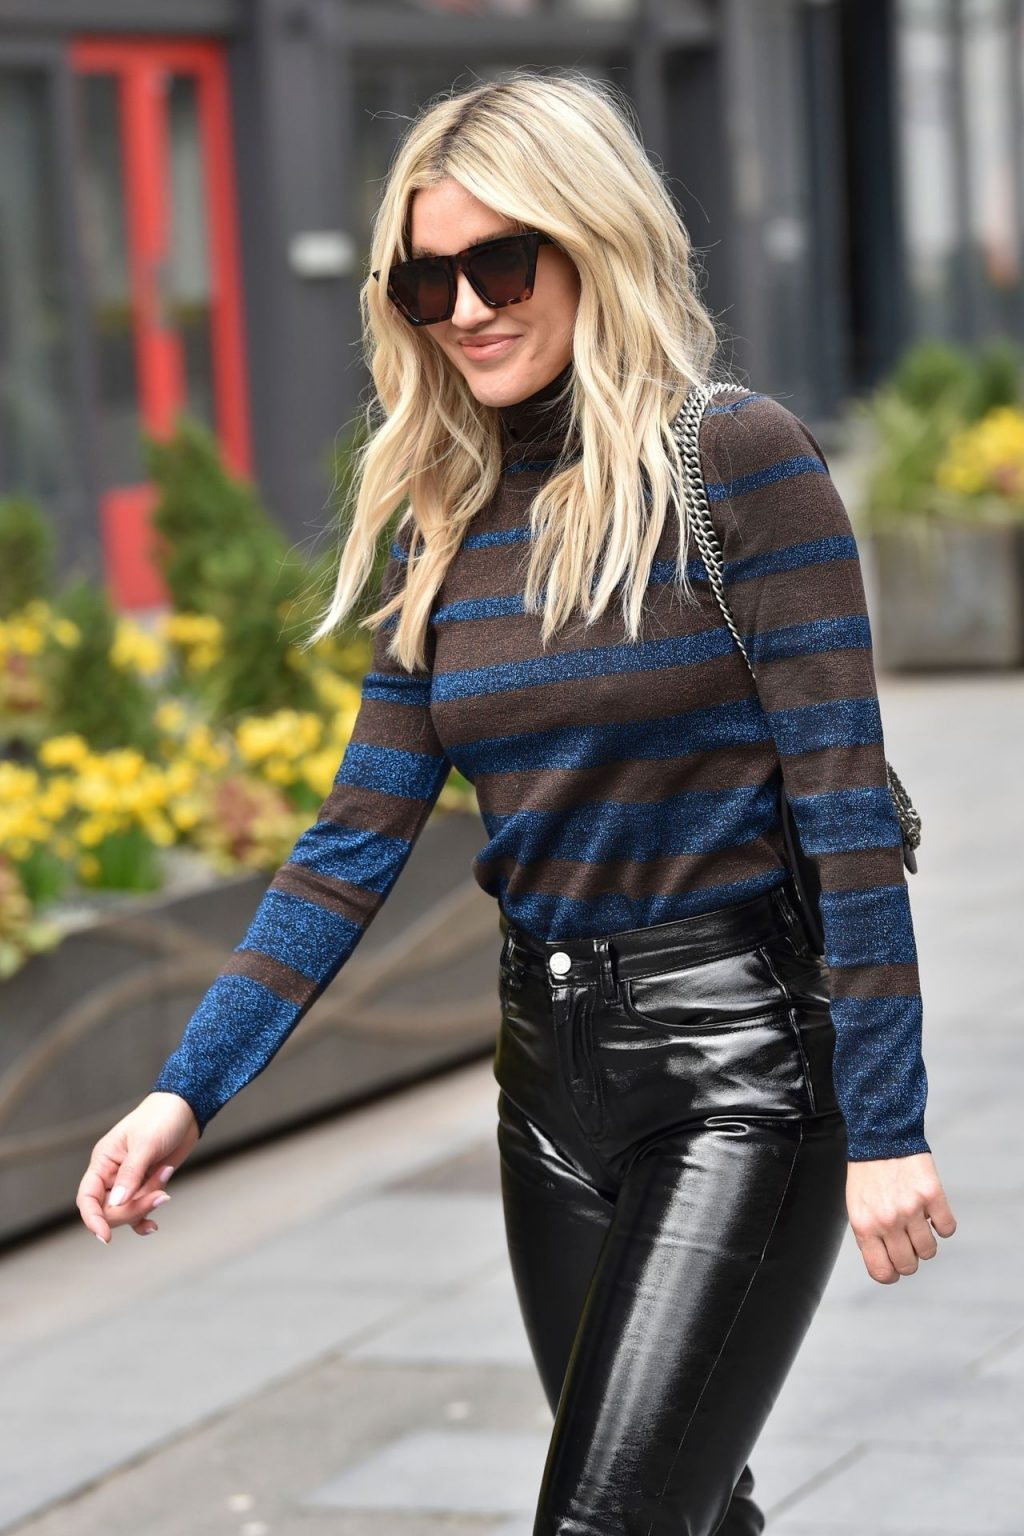 Braless Ashley Roberts Pulls of a Pair of Leather Pants at the Global Studios in London (20 Photos)